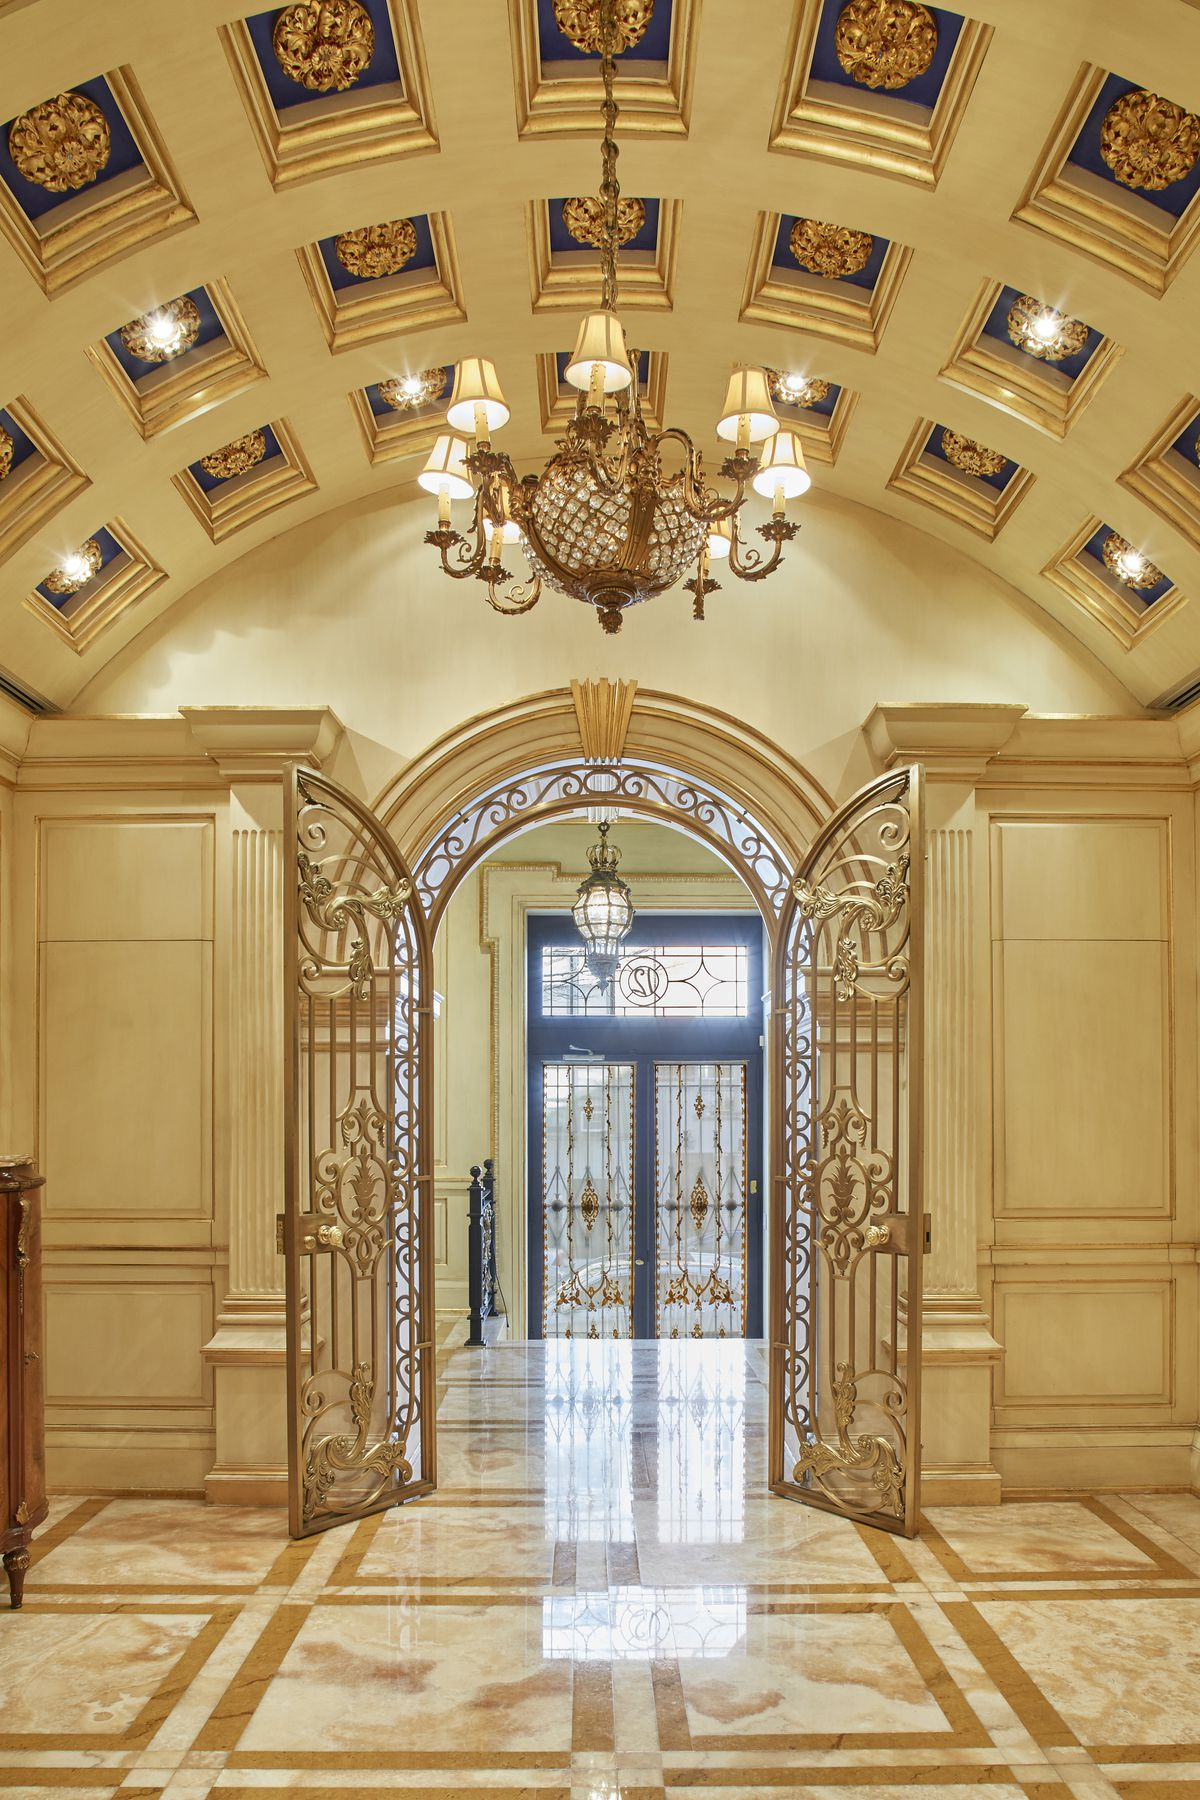 An arched entrance with golden doors, marble floors, and a chandelier.